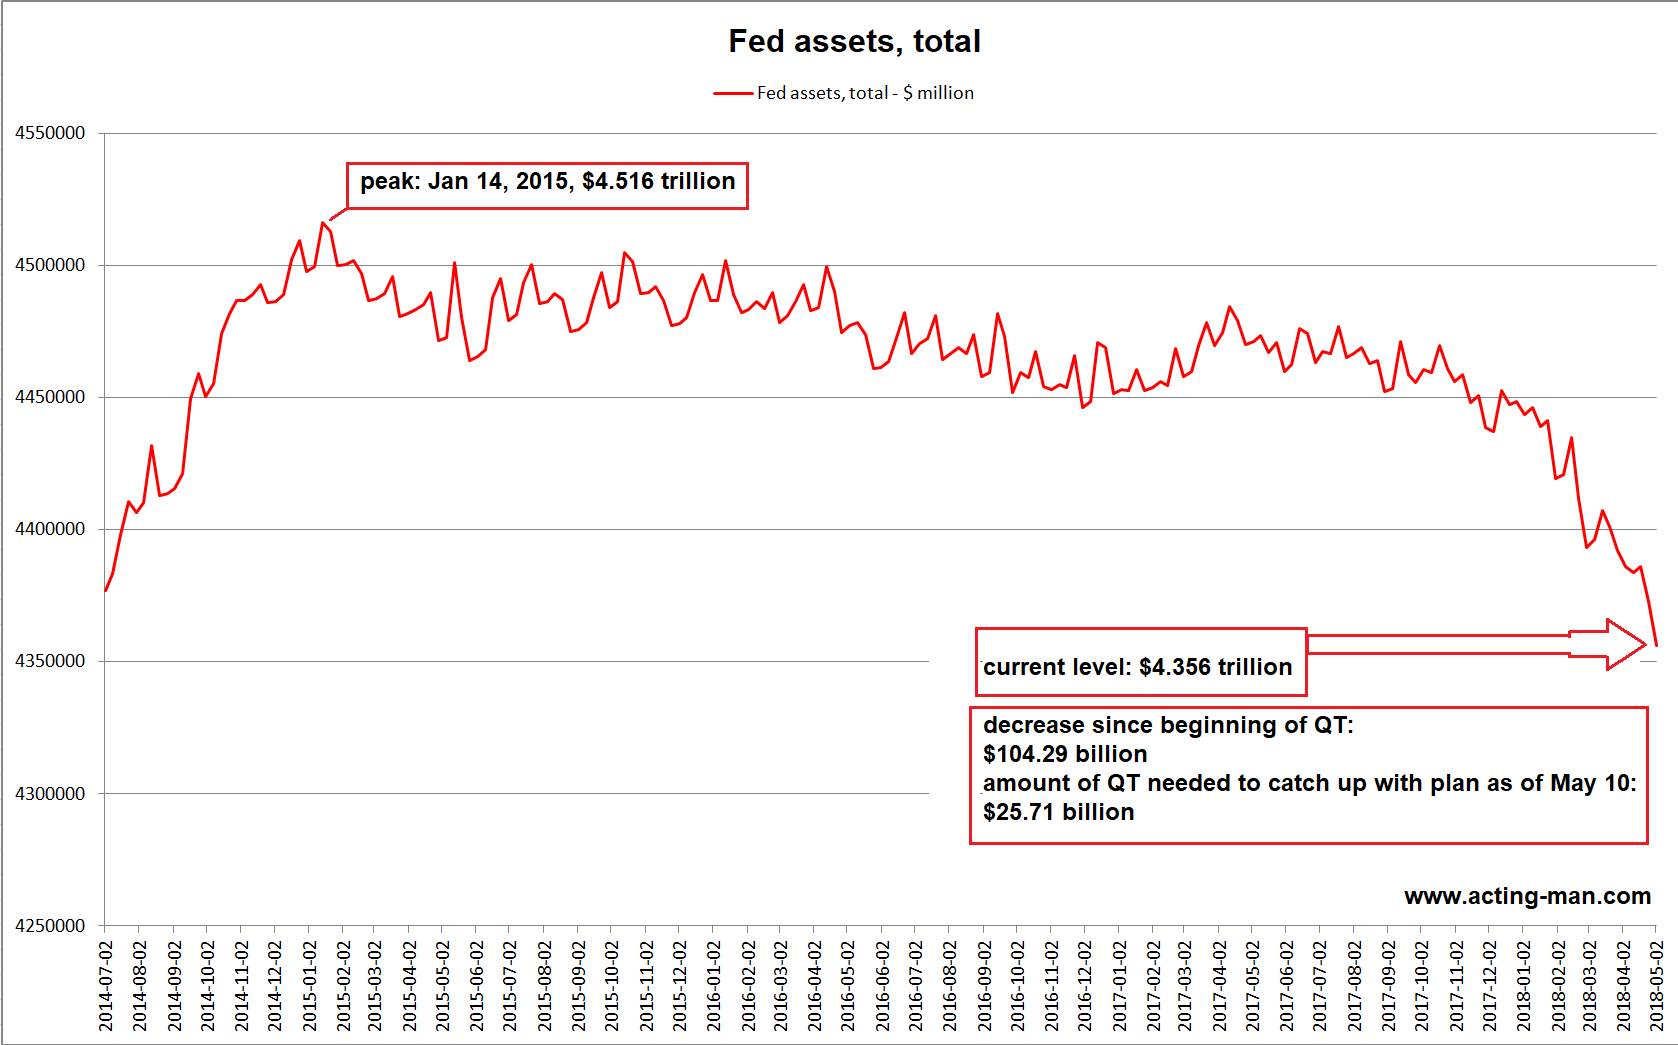 Total Fed Assets, Jul 2014 - May 2018